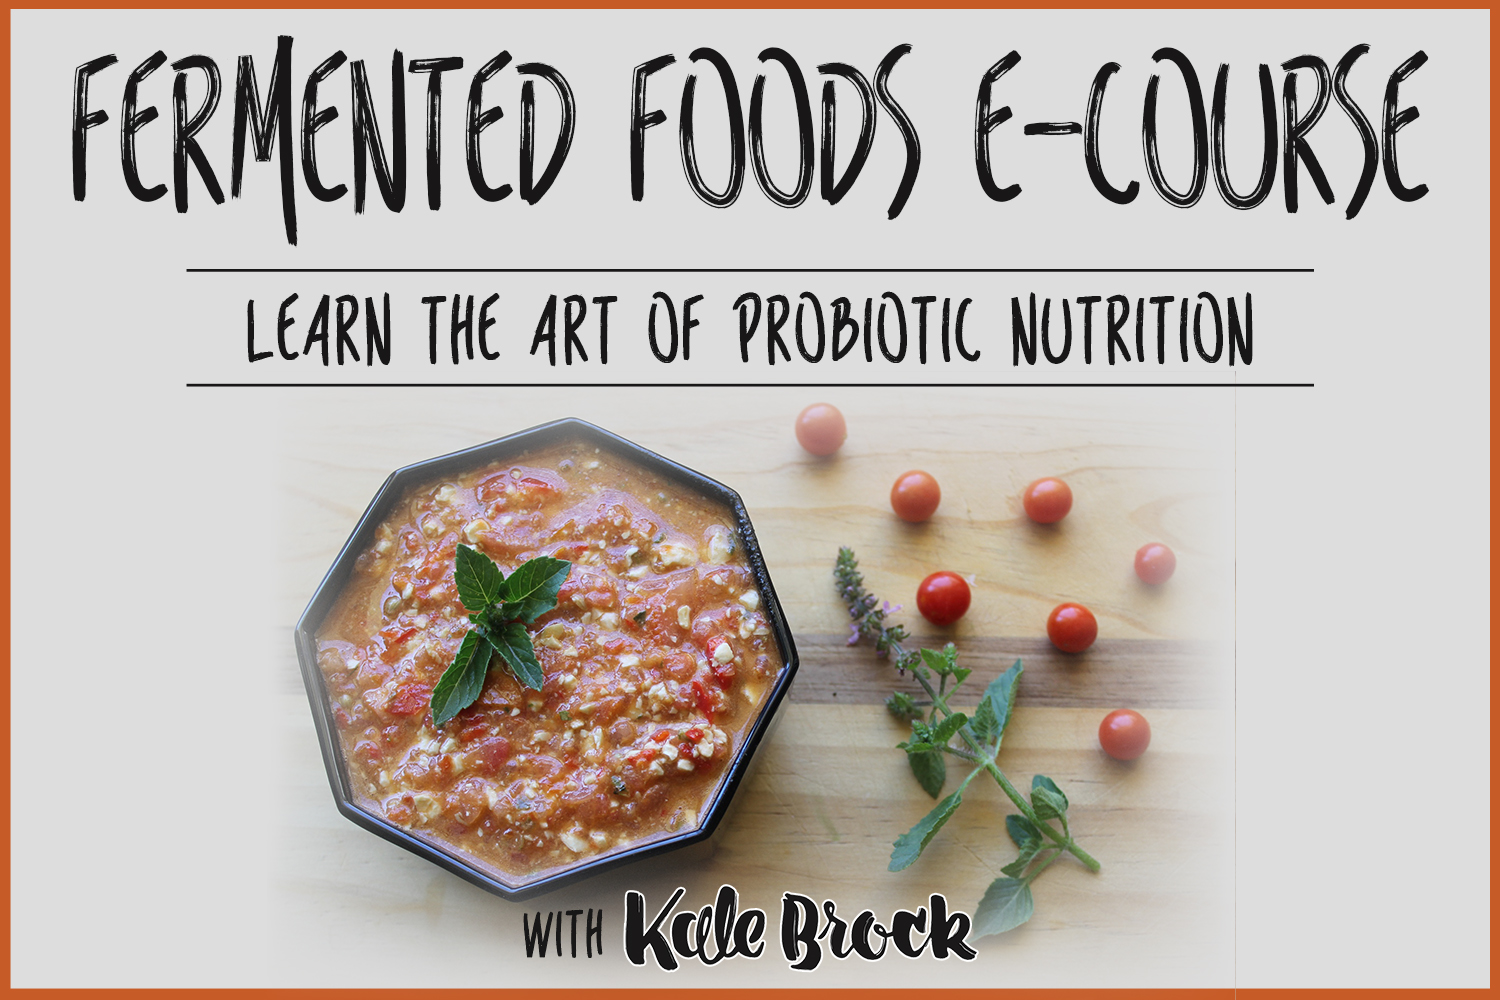 Fermented Foods E-Course Learn the Art of Probiotic Nutrition!!